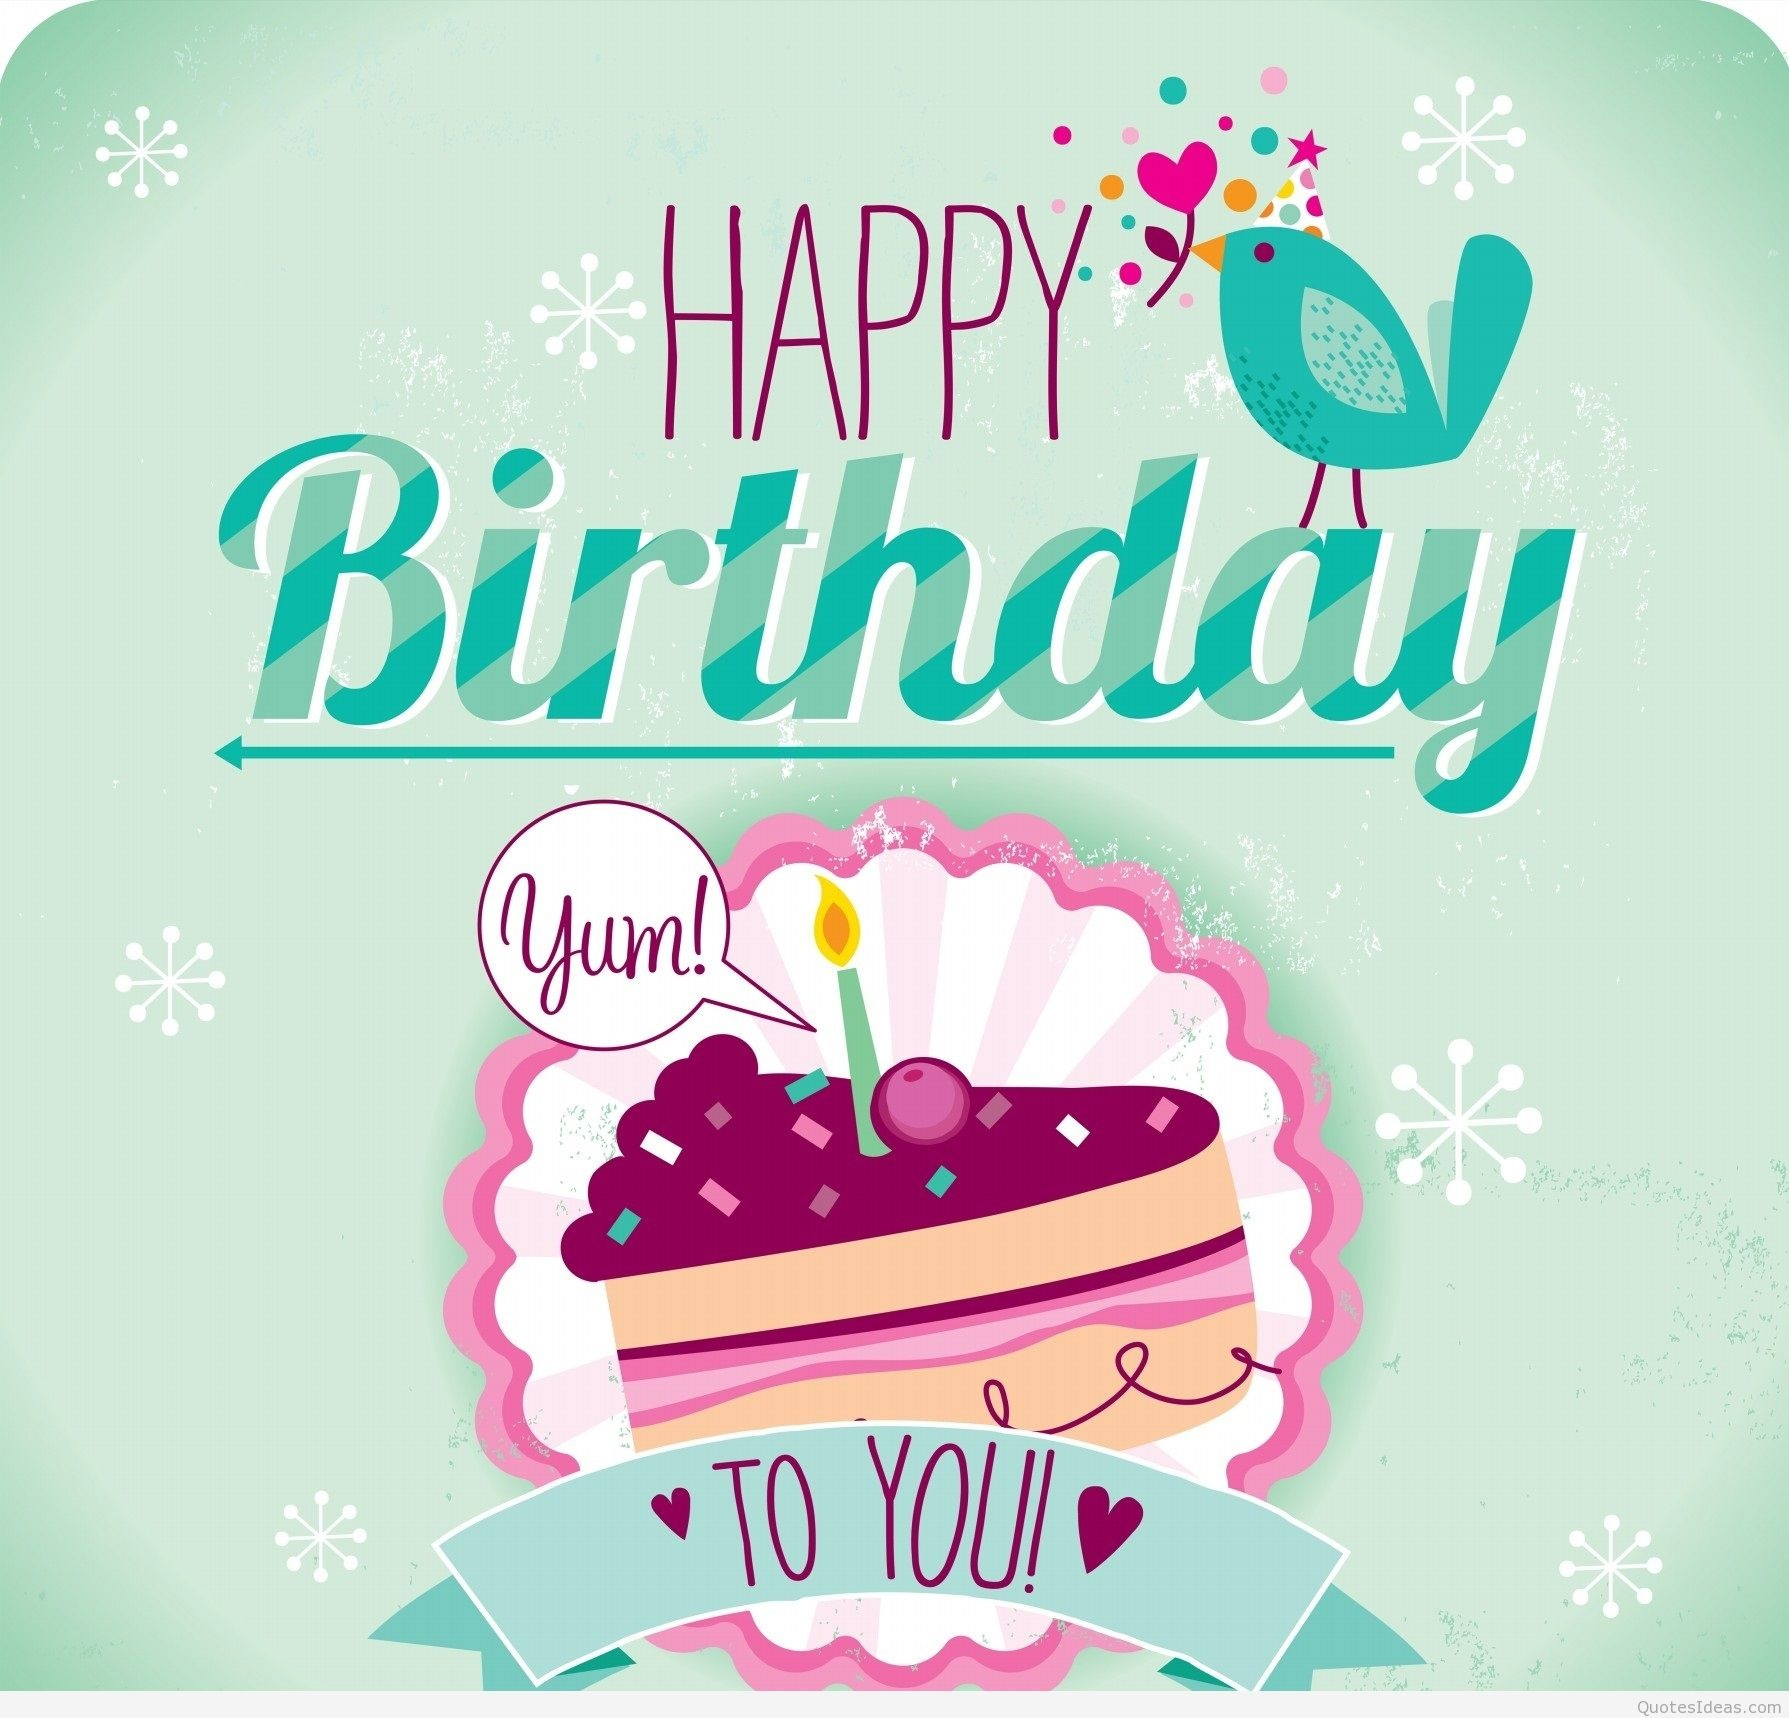 send a birthday card by email for free ; send-a-birthday-card-by-email-for-free-birthday-card-cards-happy-birthday-email-free-ecards-happy-birthday-cards-to-send-happy-birthday-cards-to-send